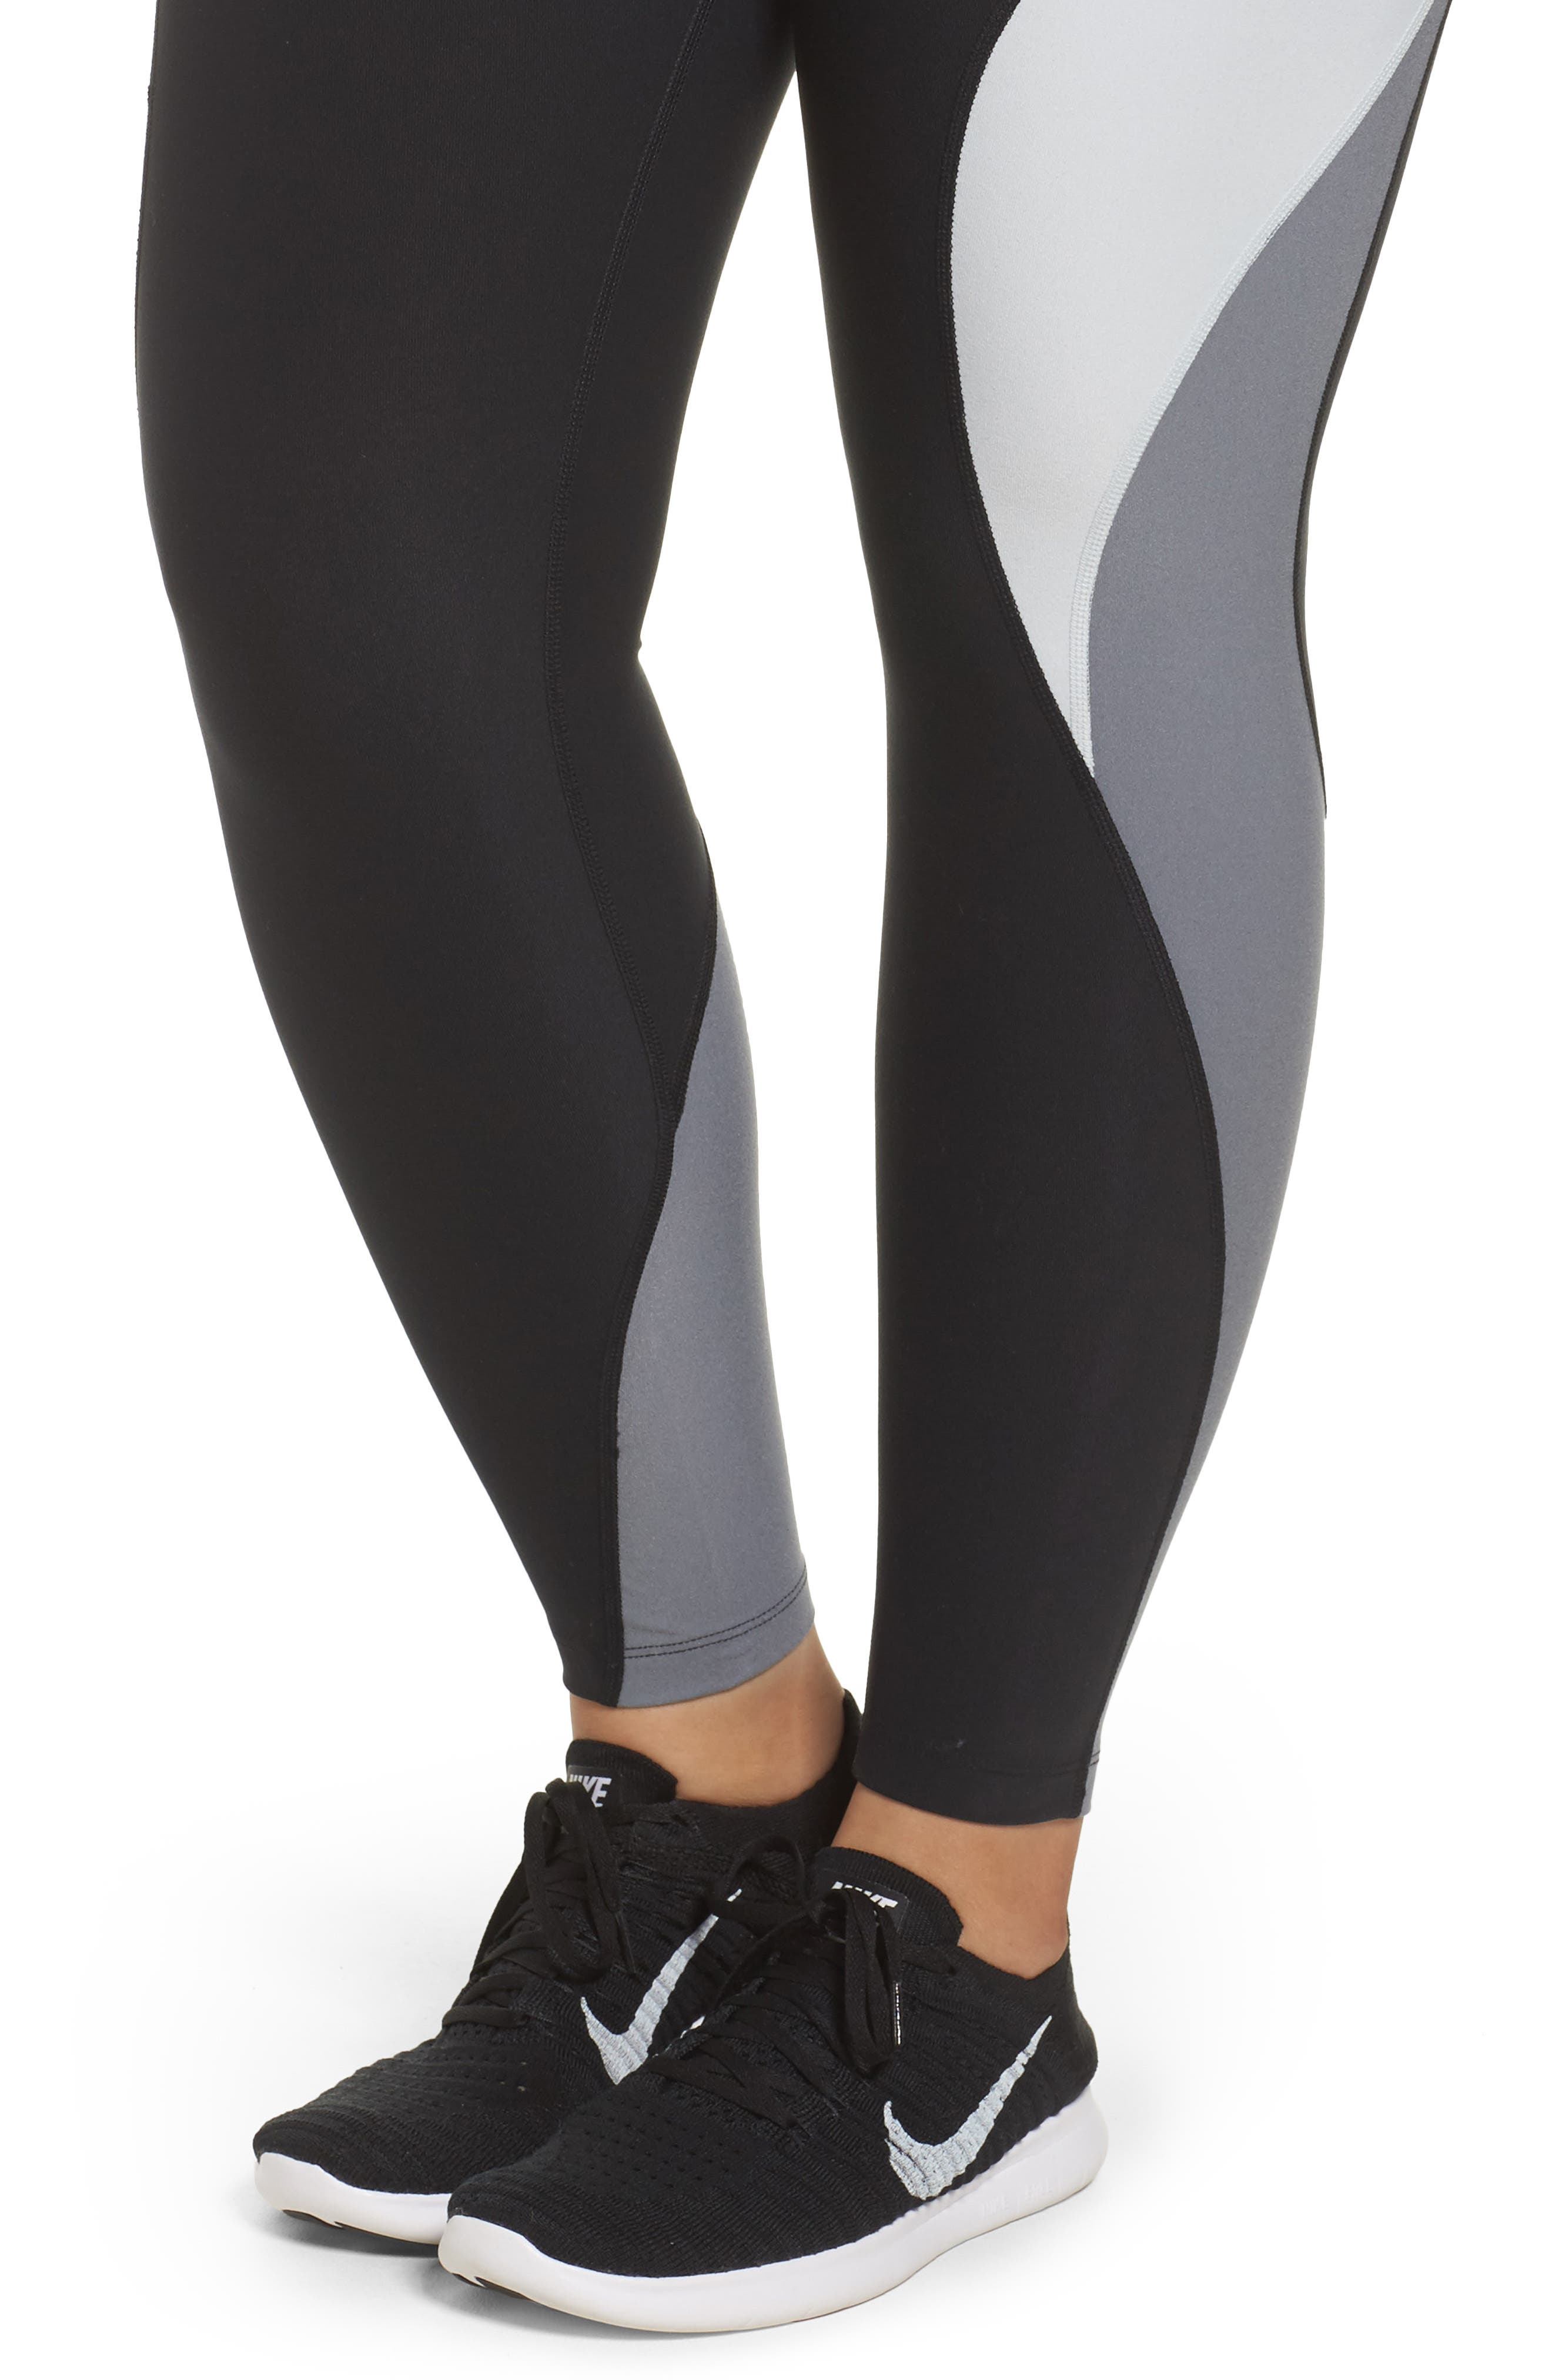 Power Legend Training Tights,                             Alternate thumbnail 4, color,                             Black/ Platinum/ Grey